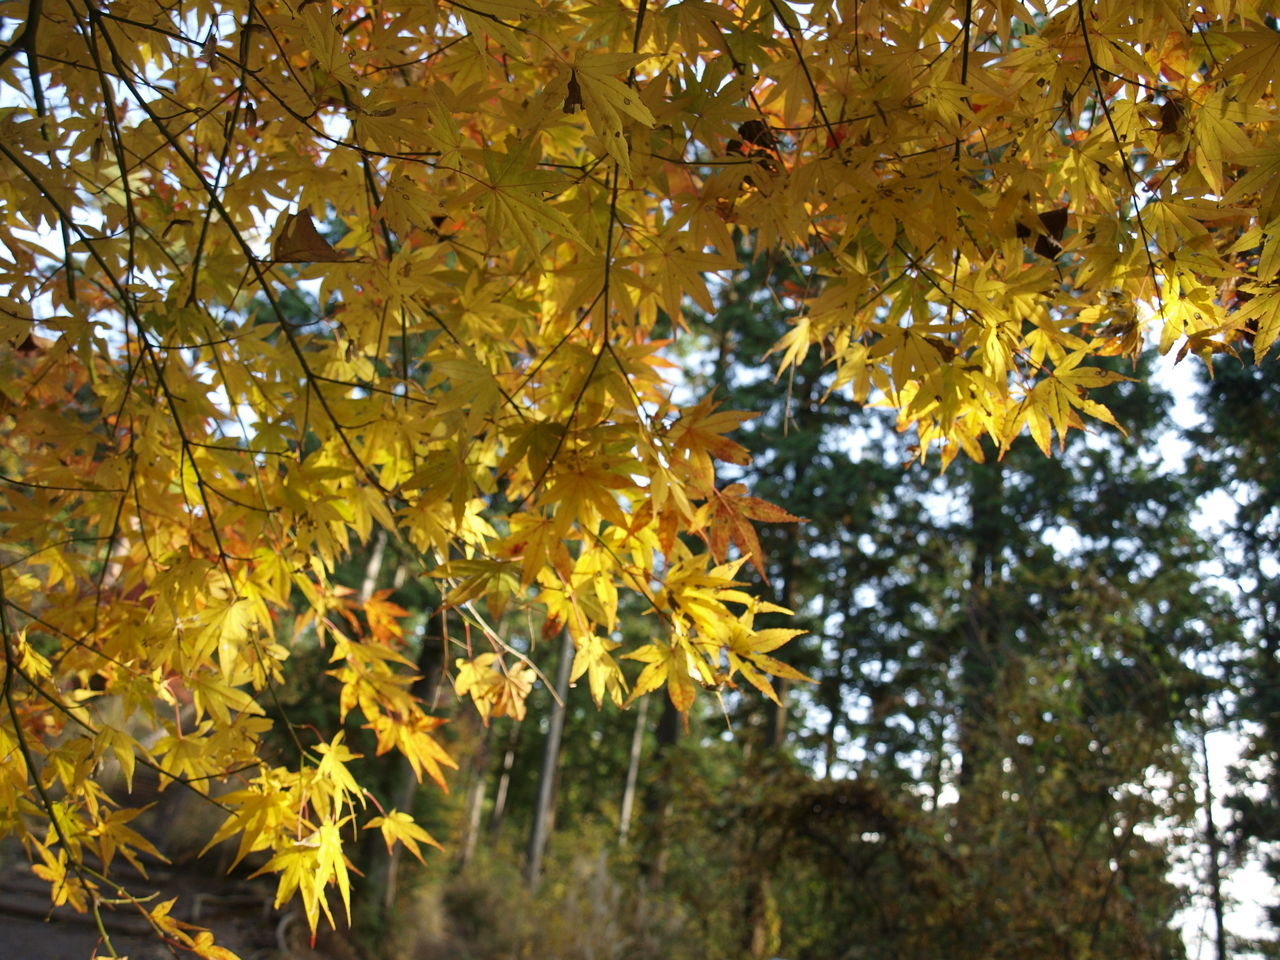 Tree Yellow Green Fine View Daylight Nature Walking Countryside Autumn Leaves Autumn Momiji Autumn Colors Momijigari Sightseeing Outdoors Japan Hiking Beautiful Jinba Mountain Mountain Takao Mountain Trekking Activity Red Sky